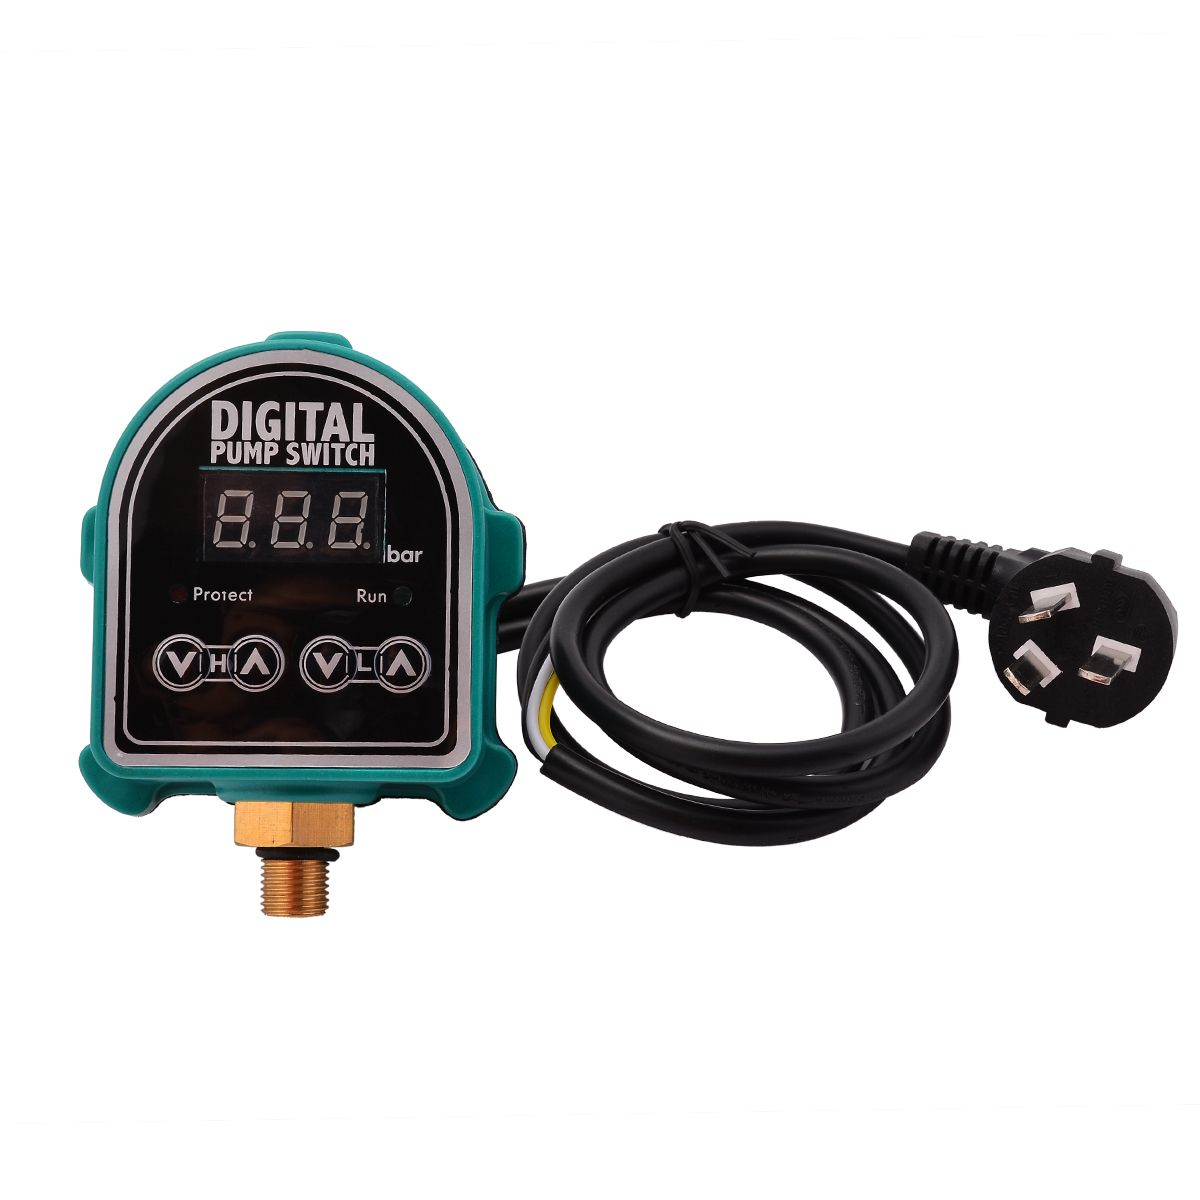 Mayitr 220V Digital LCD Water Pumps Pressure Switch Garden Gas Eletronic Controller Control Switch For Water Pump Supplies